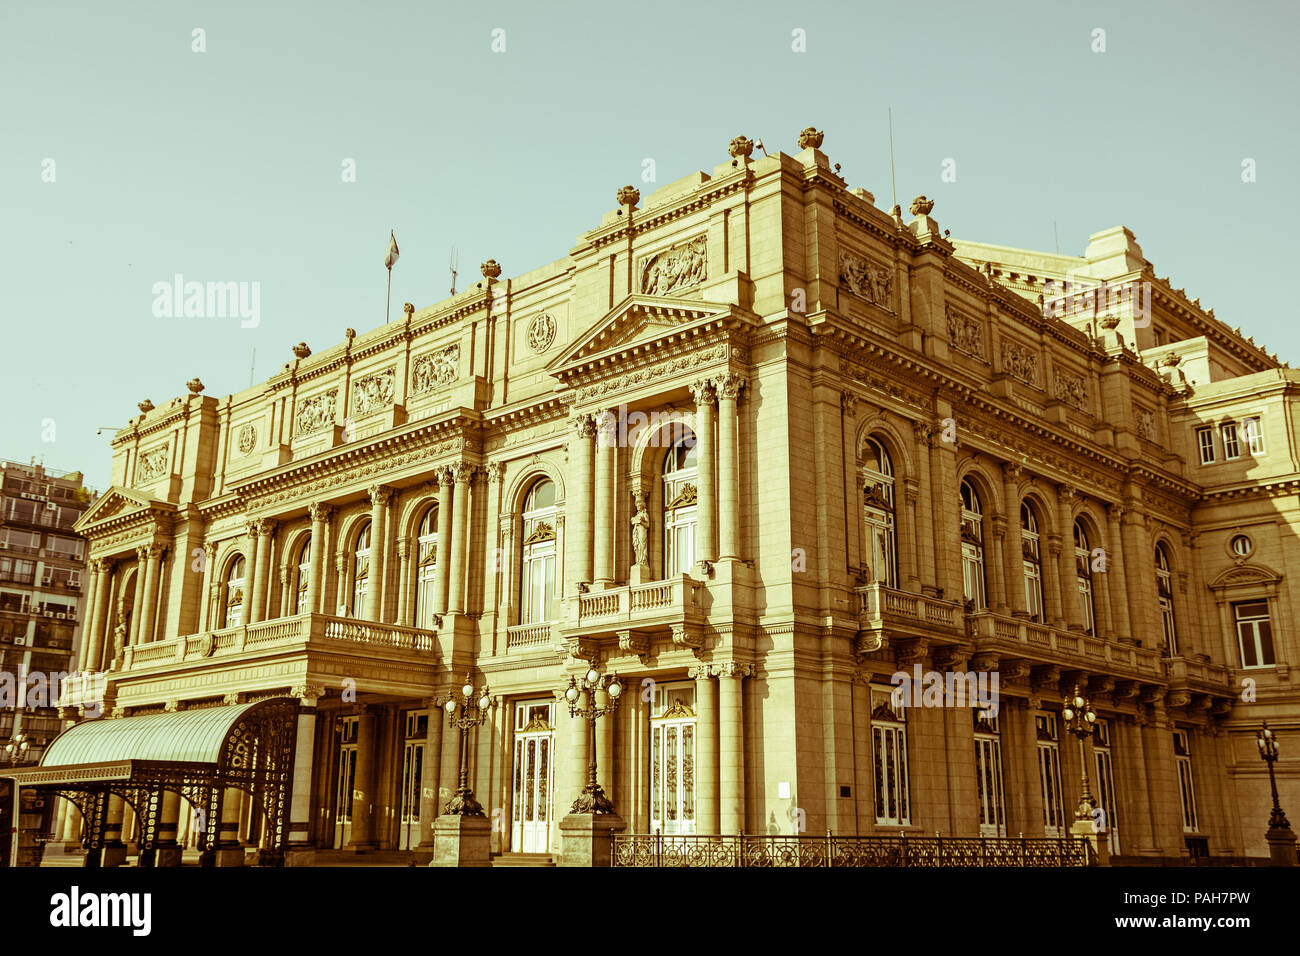 Colon Theatre facade on 9 de julio Avenue at Buenos Aires, Argentina. Vintage and yesteryear effect Stock Photo